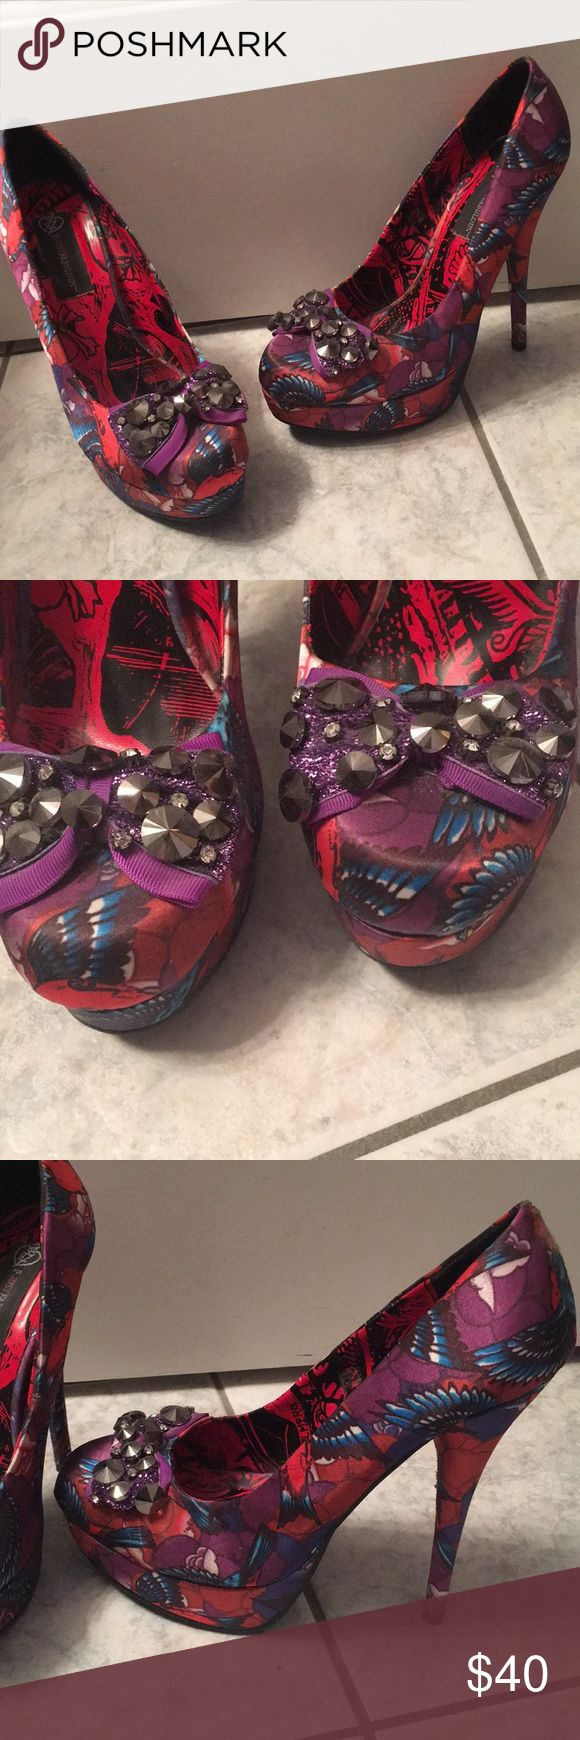 Pink and Purple Heels Purple/pink/blue/black patterned, purple bow on front with grey gems, NEVER WORN, size 10, very high heel Shoes Heels